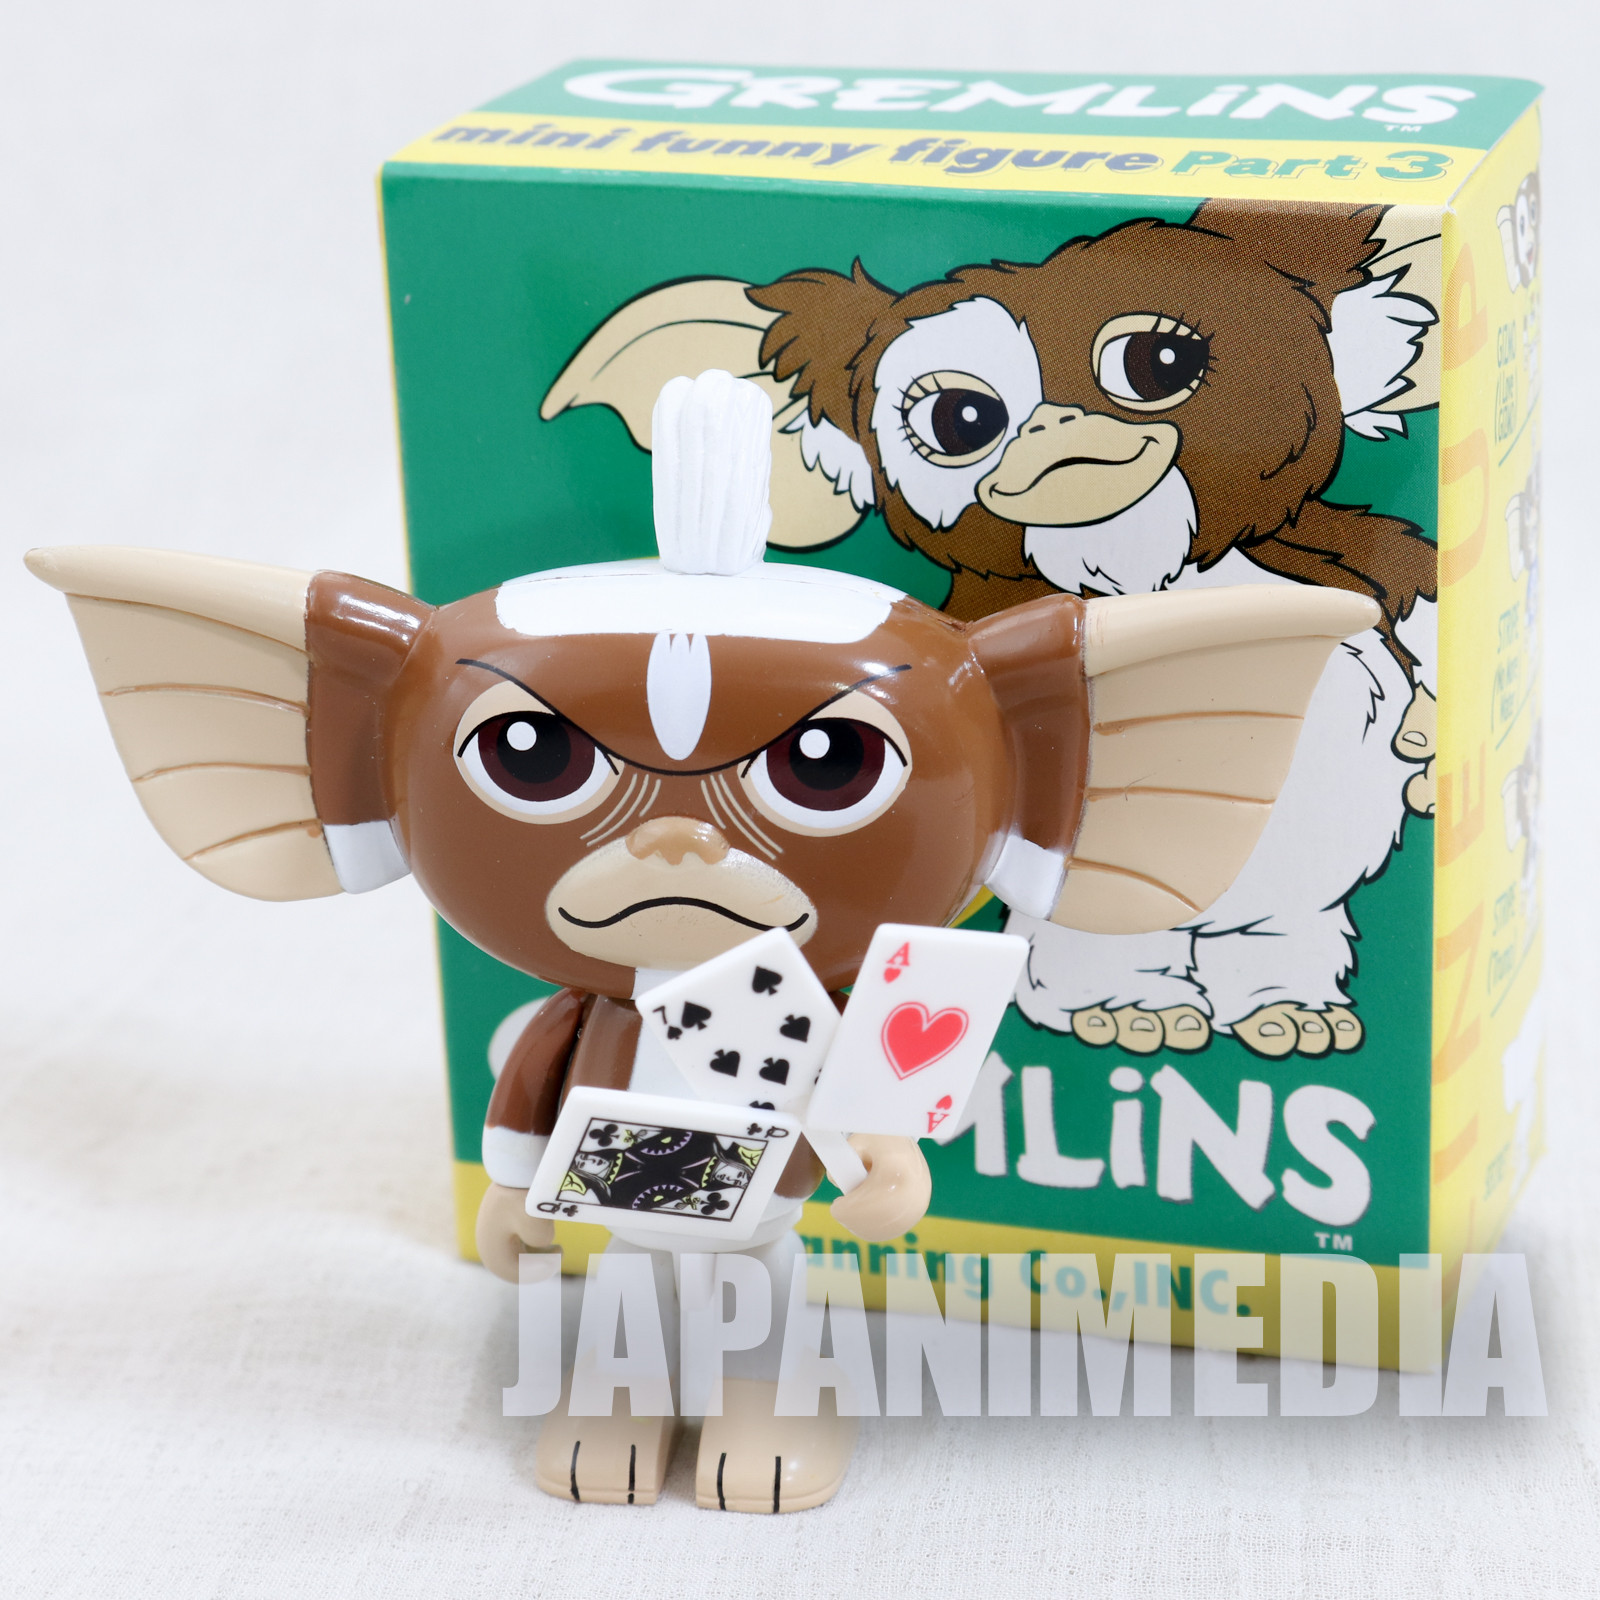 Gremlins 2 Jun Planning Mini Funny Figure Part.3 Stripe Trump Ver. JAPAN